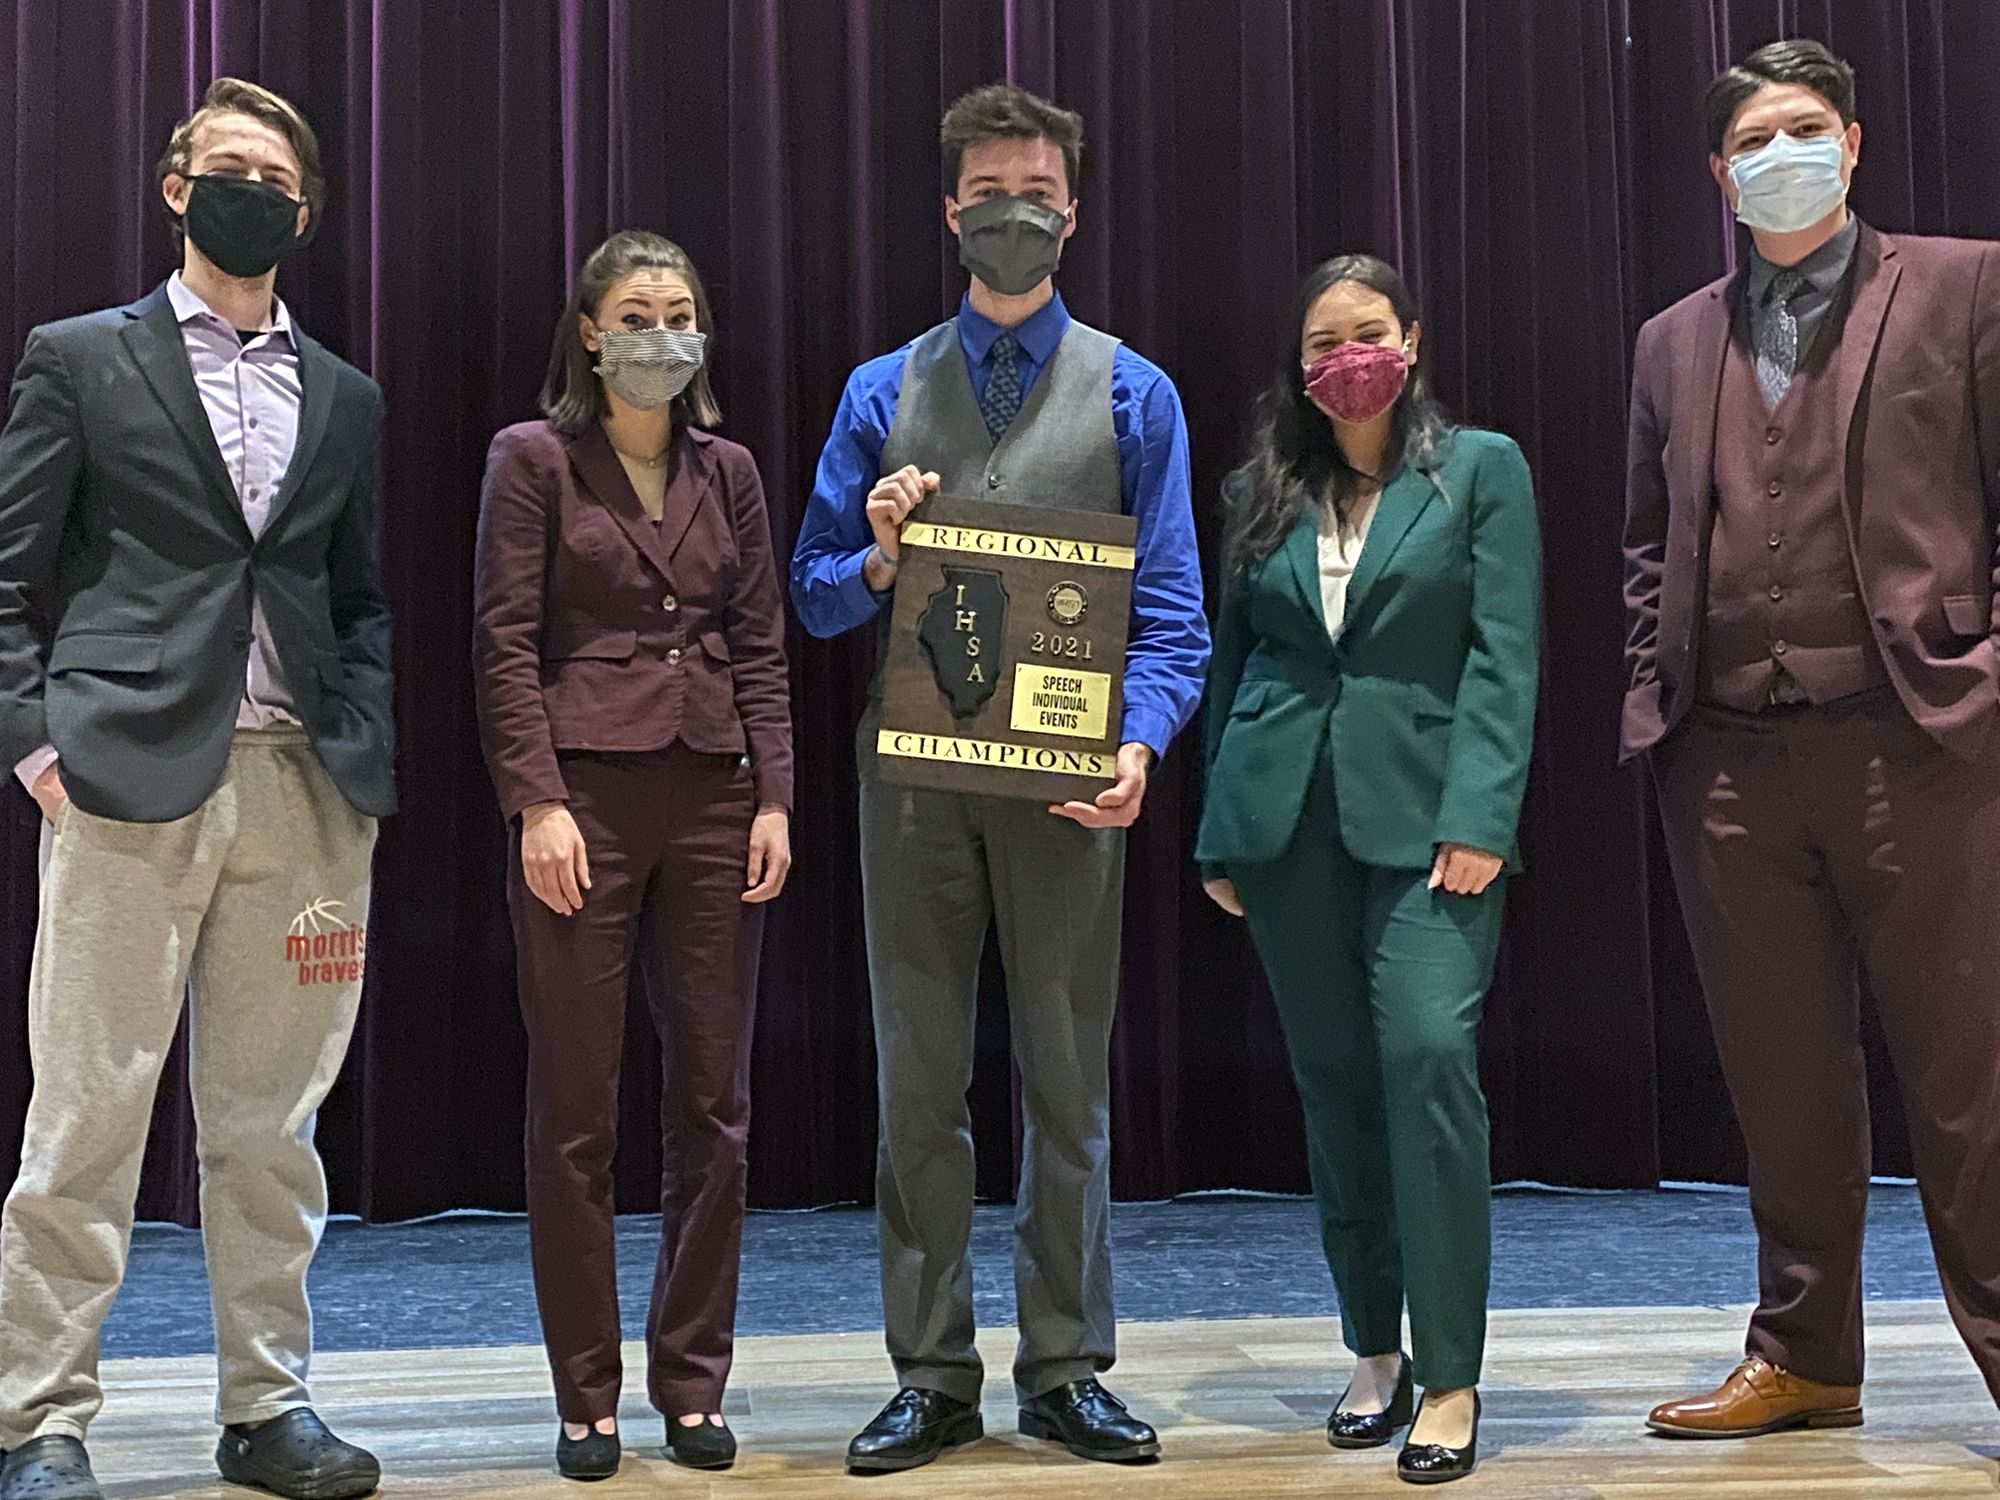 Morris senior speech team members Reagan McDaniel (from left), Molly Gustafson, Keaton Auwerda, Andrea Barron and Alex Duffy show off their regional championship plaque.